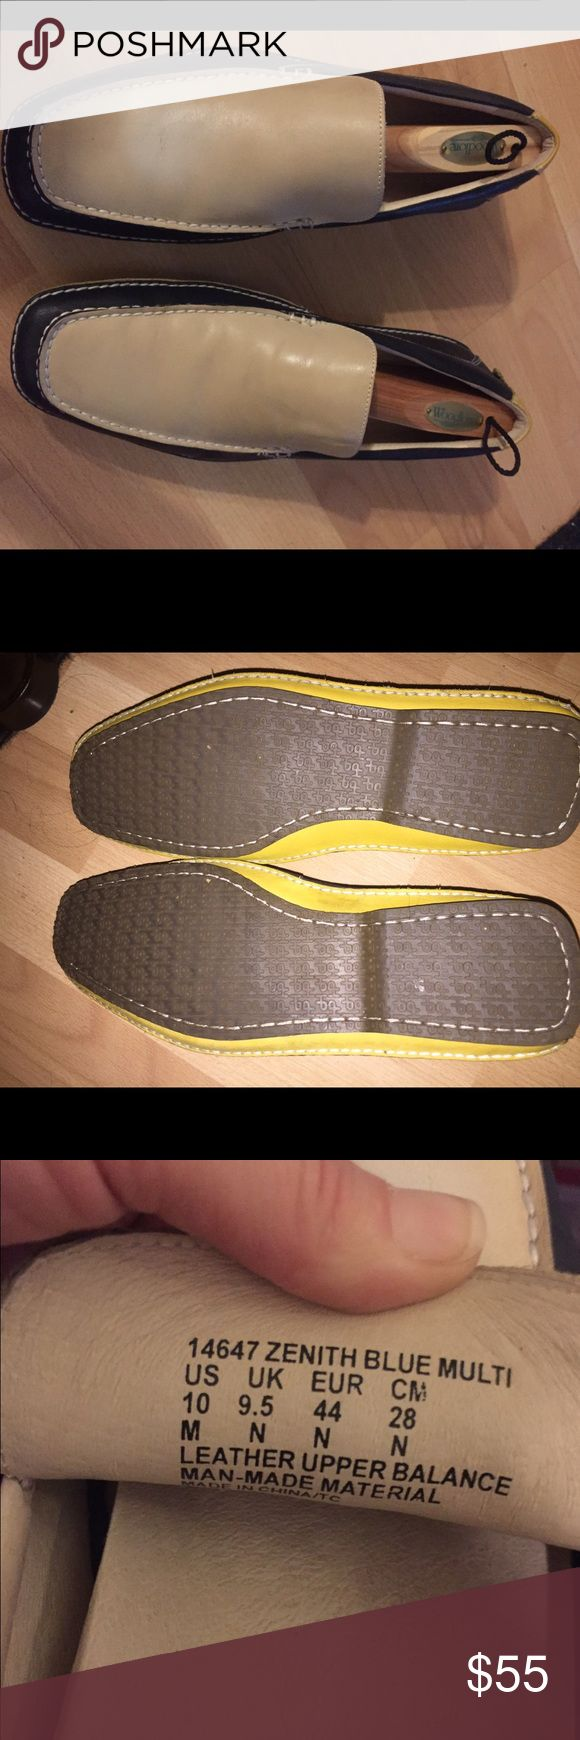 Men's HUSH PUPPIES sz 10 two tone loafers! Men. Two-tone size 10 hush puppy loafers with yellow on the heels and rubber soles. They come with shoe horns. They are in great condition and can go with any outfit. Hush Puppies Shoes Loafers & Slip-Ons